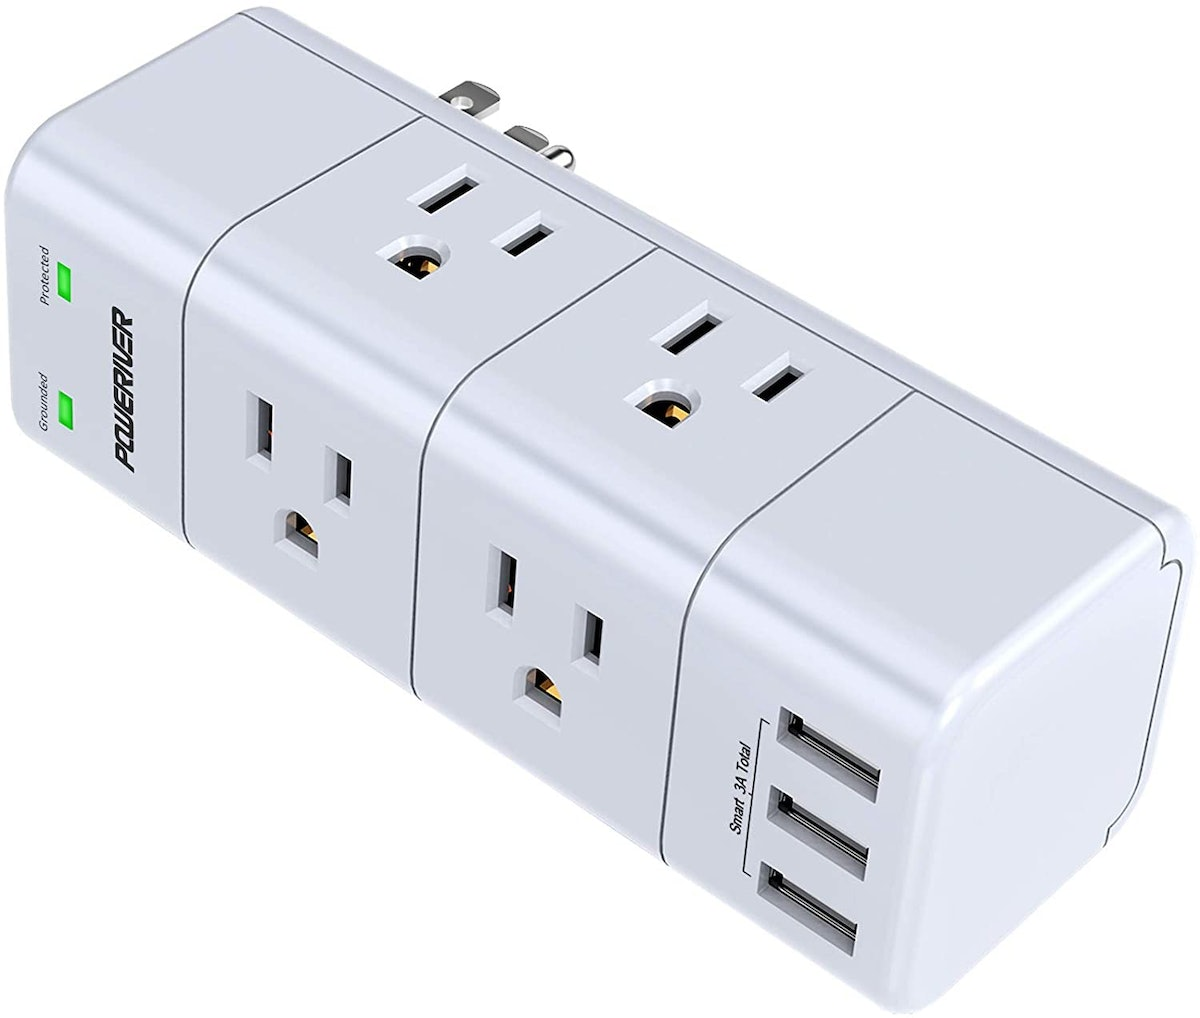 POWERIVER Power Strip with 6 Outlet Extender